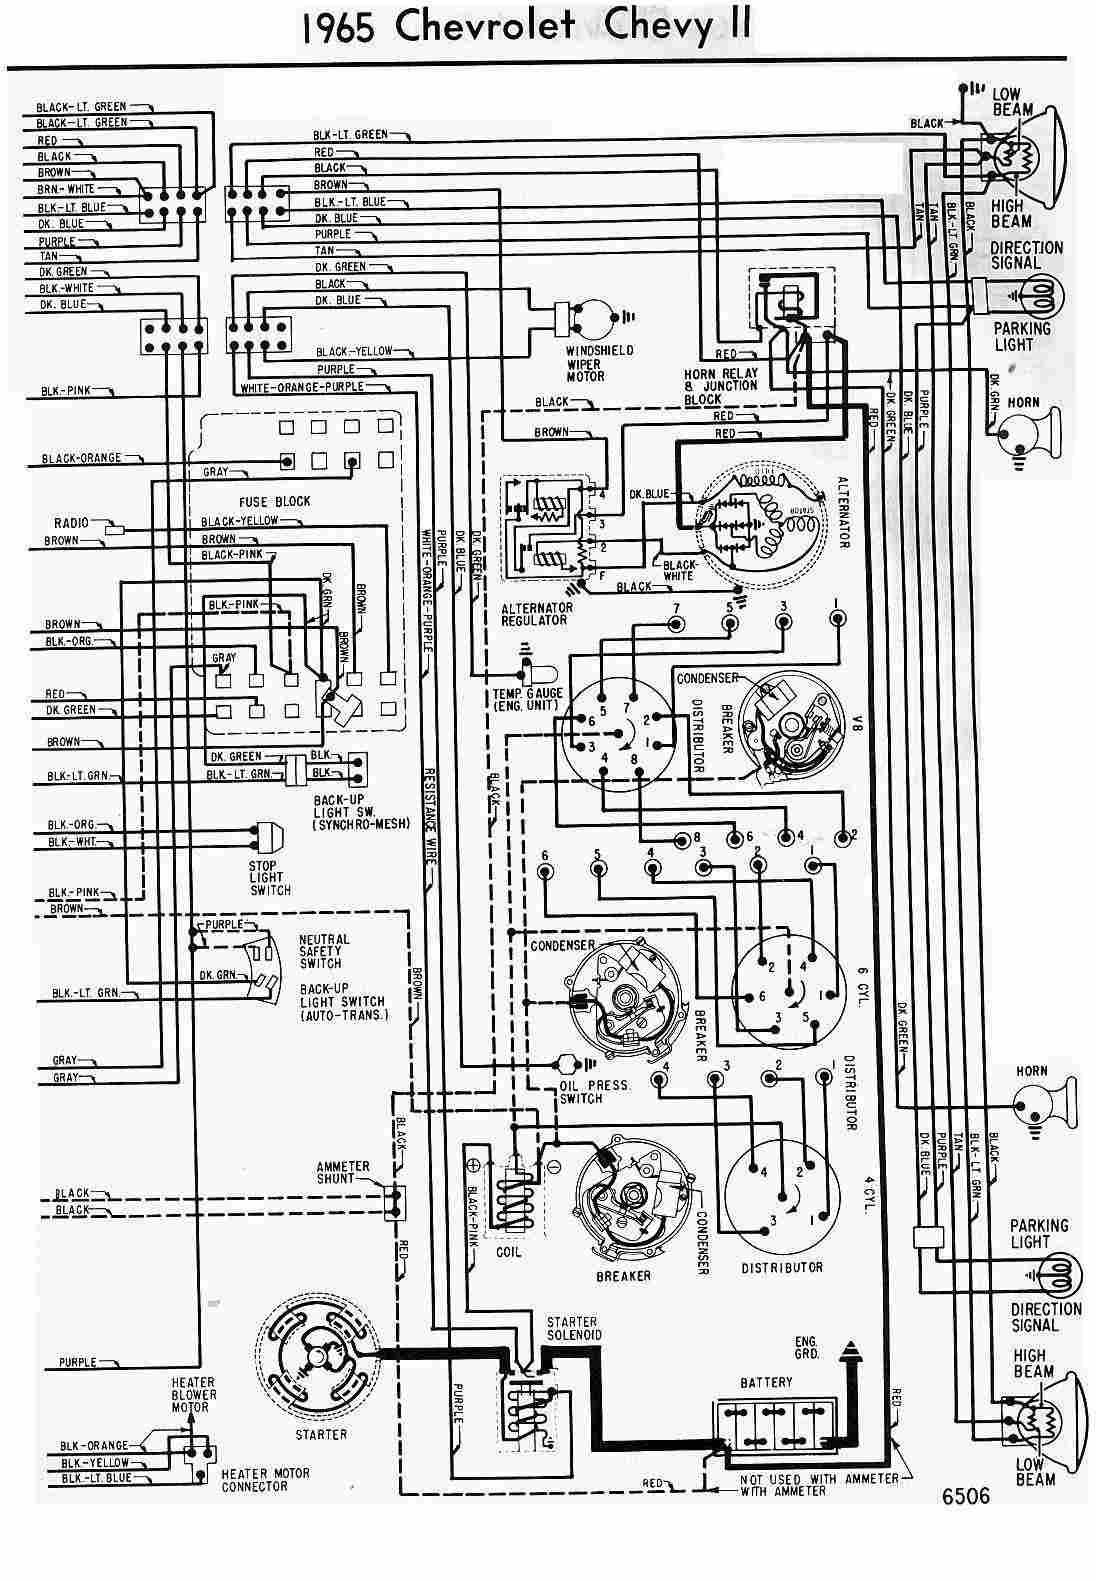 Chevrolet Car Manuals Wiring Diagrams Pdf Fault Codes 1965 Ford F100 Color Download